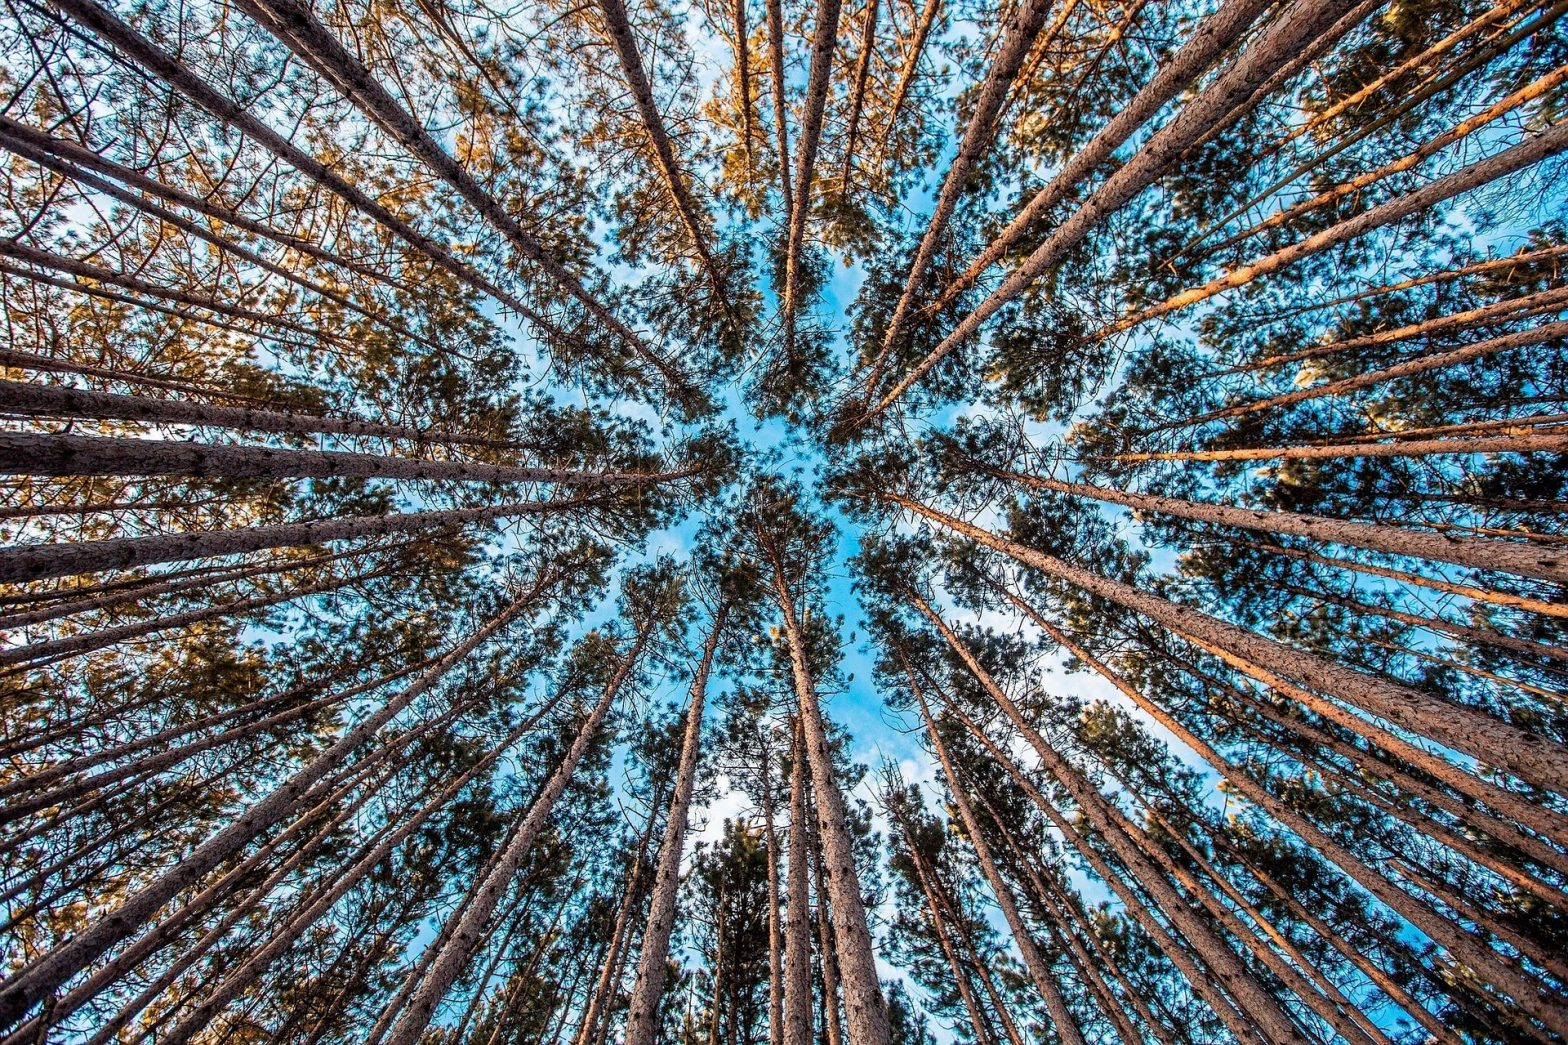 View from the ground looking up to tree tops in a forest